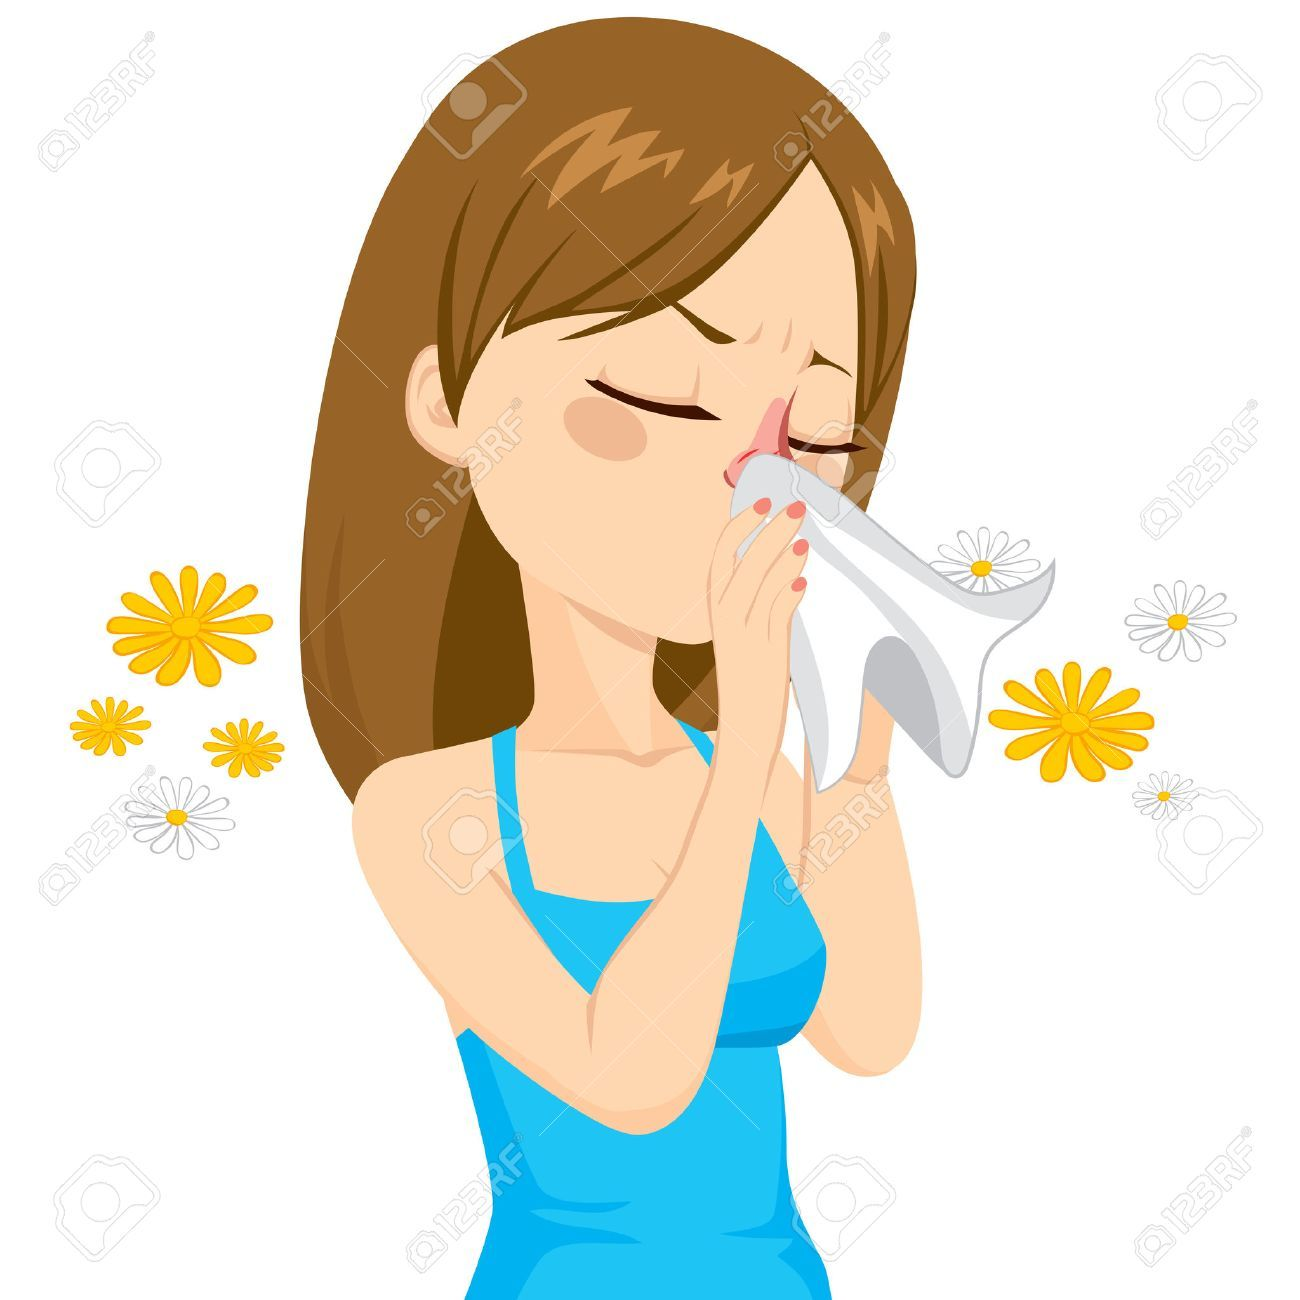 Blow your nose clipart clipart library Blowing your nose clipart 5 » Clipart Portal clipart library